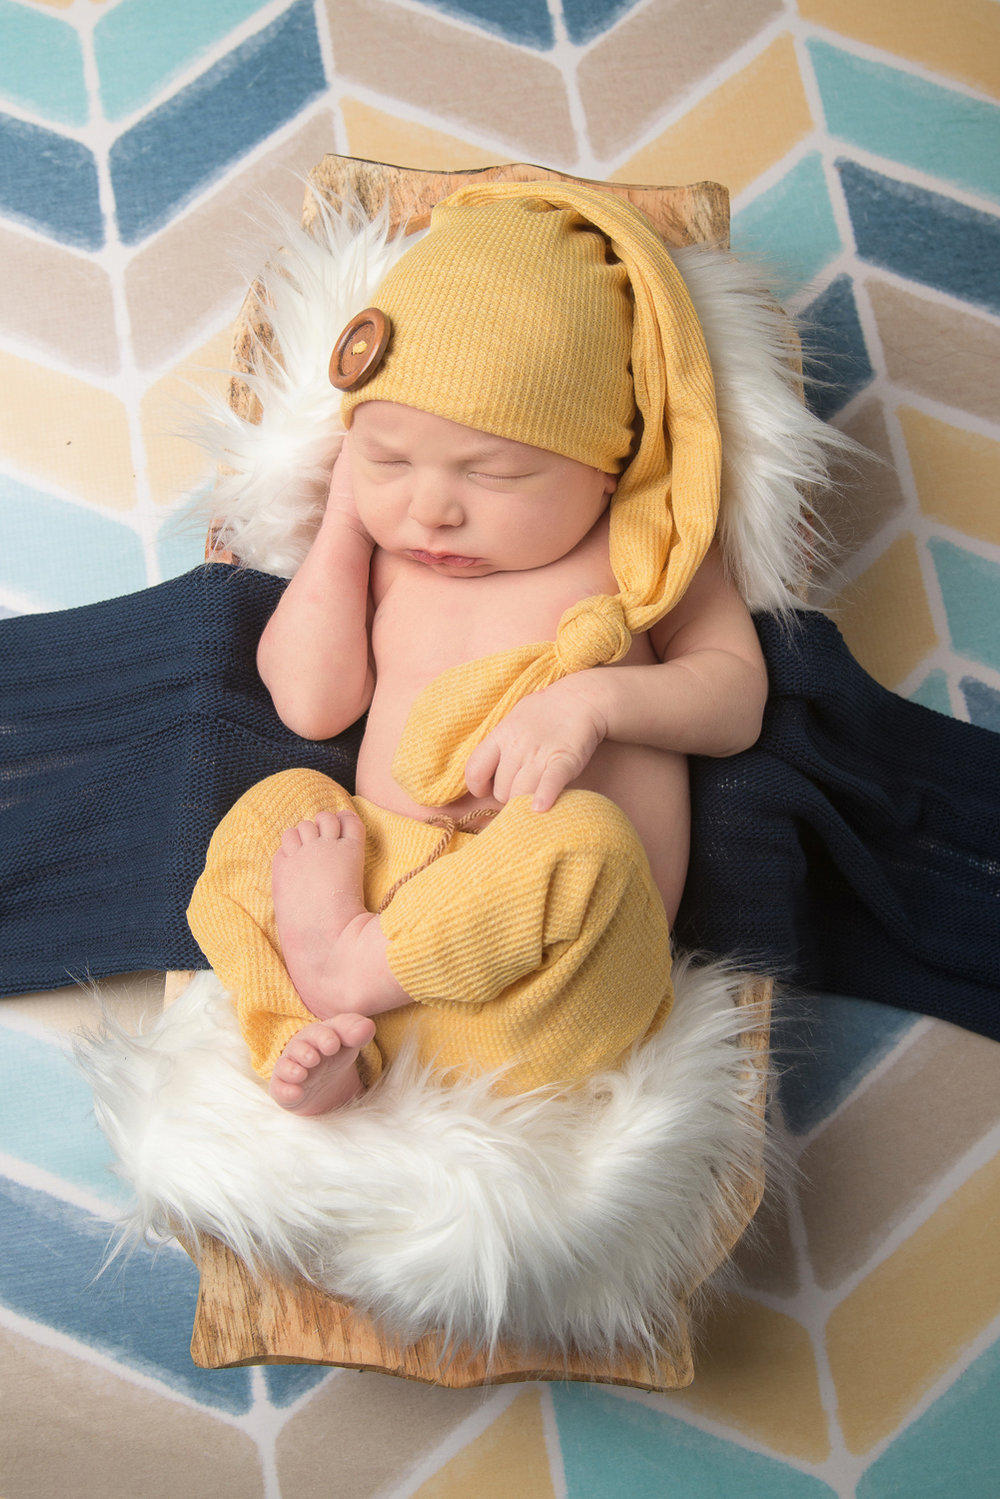 st-louis-newborn-photography-baby-boy-yellow-outfit-and-hat-blue-arrow-background-in-basket.jpg